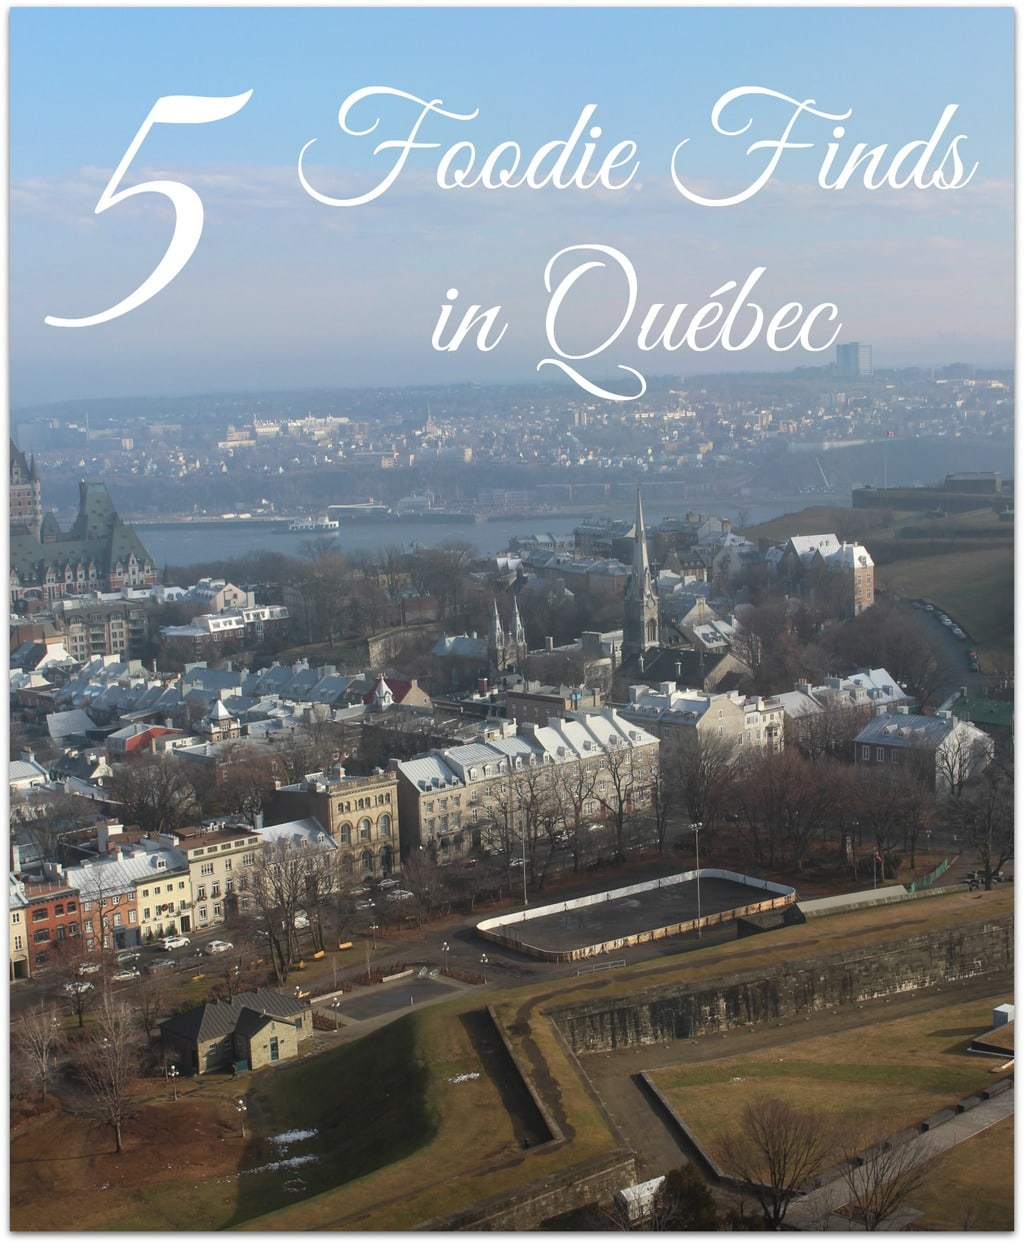 foodie finds in quebec